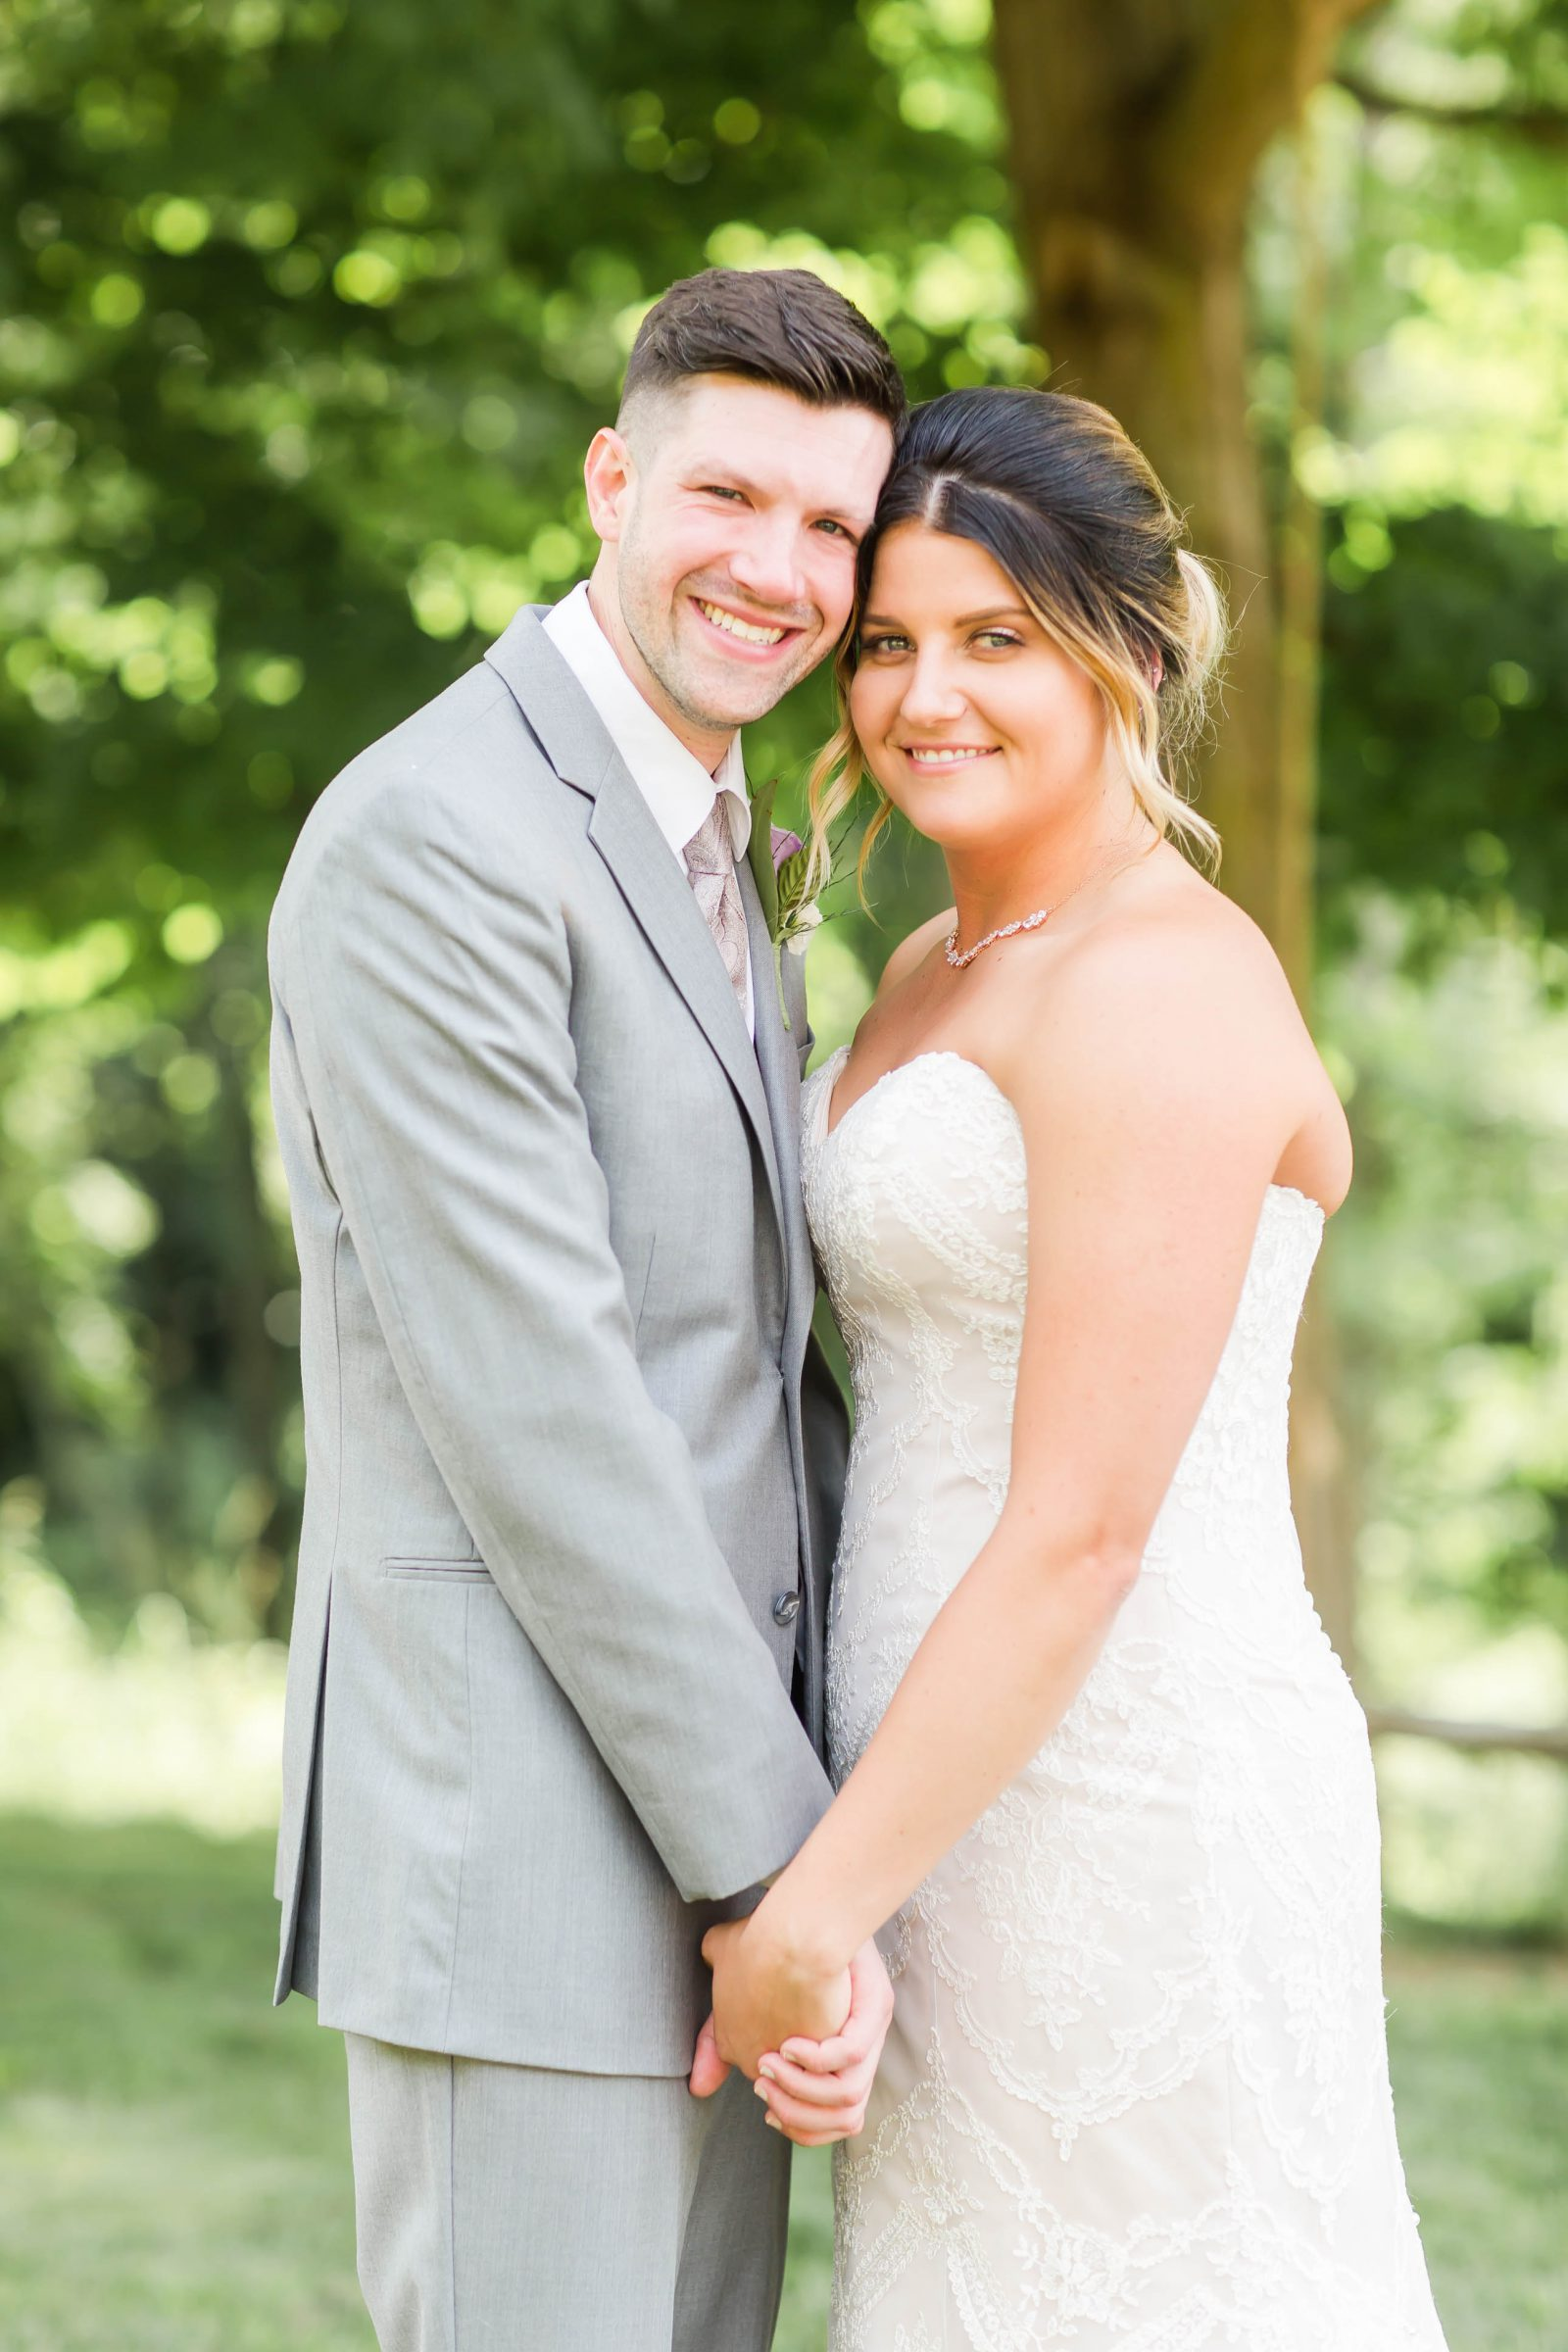 rivercrest-farm-summer-wedding-loren-jackson-photography-38